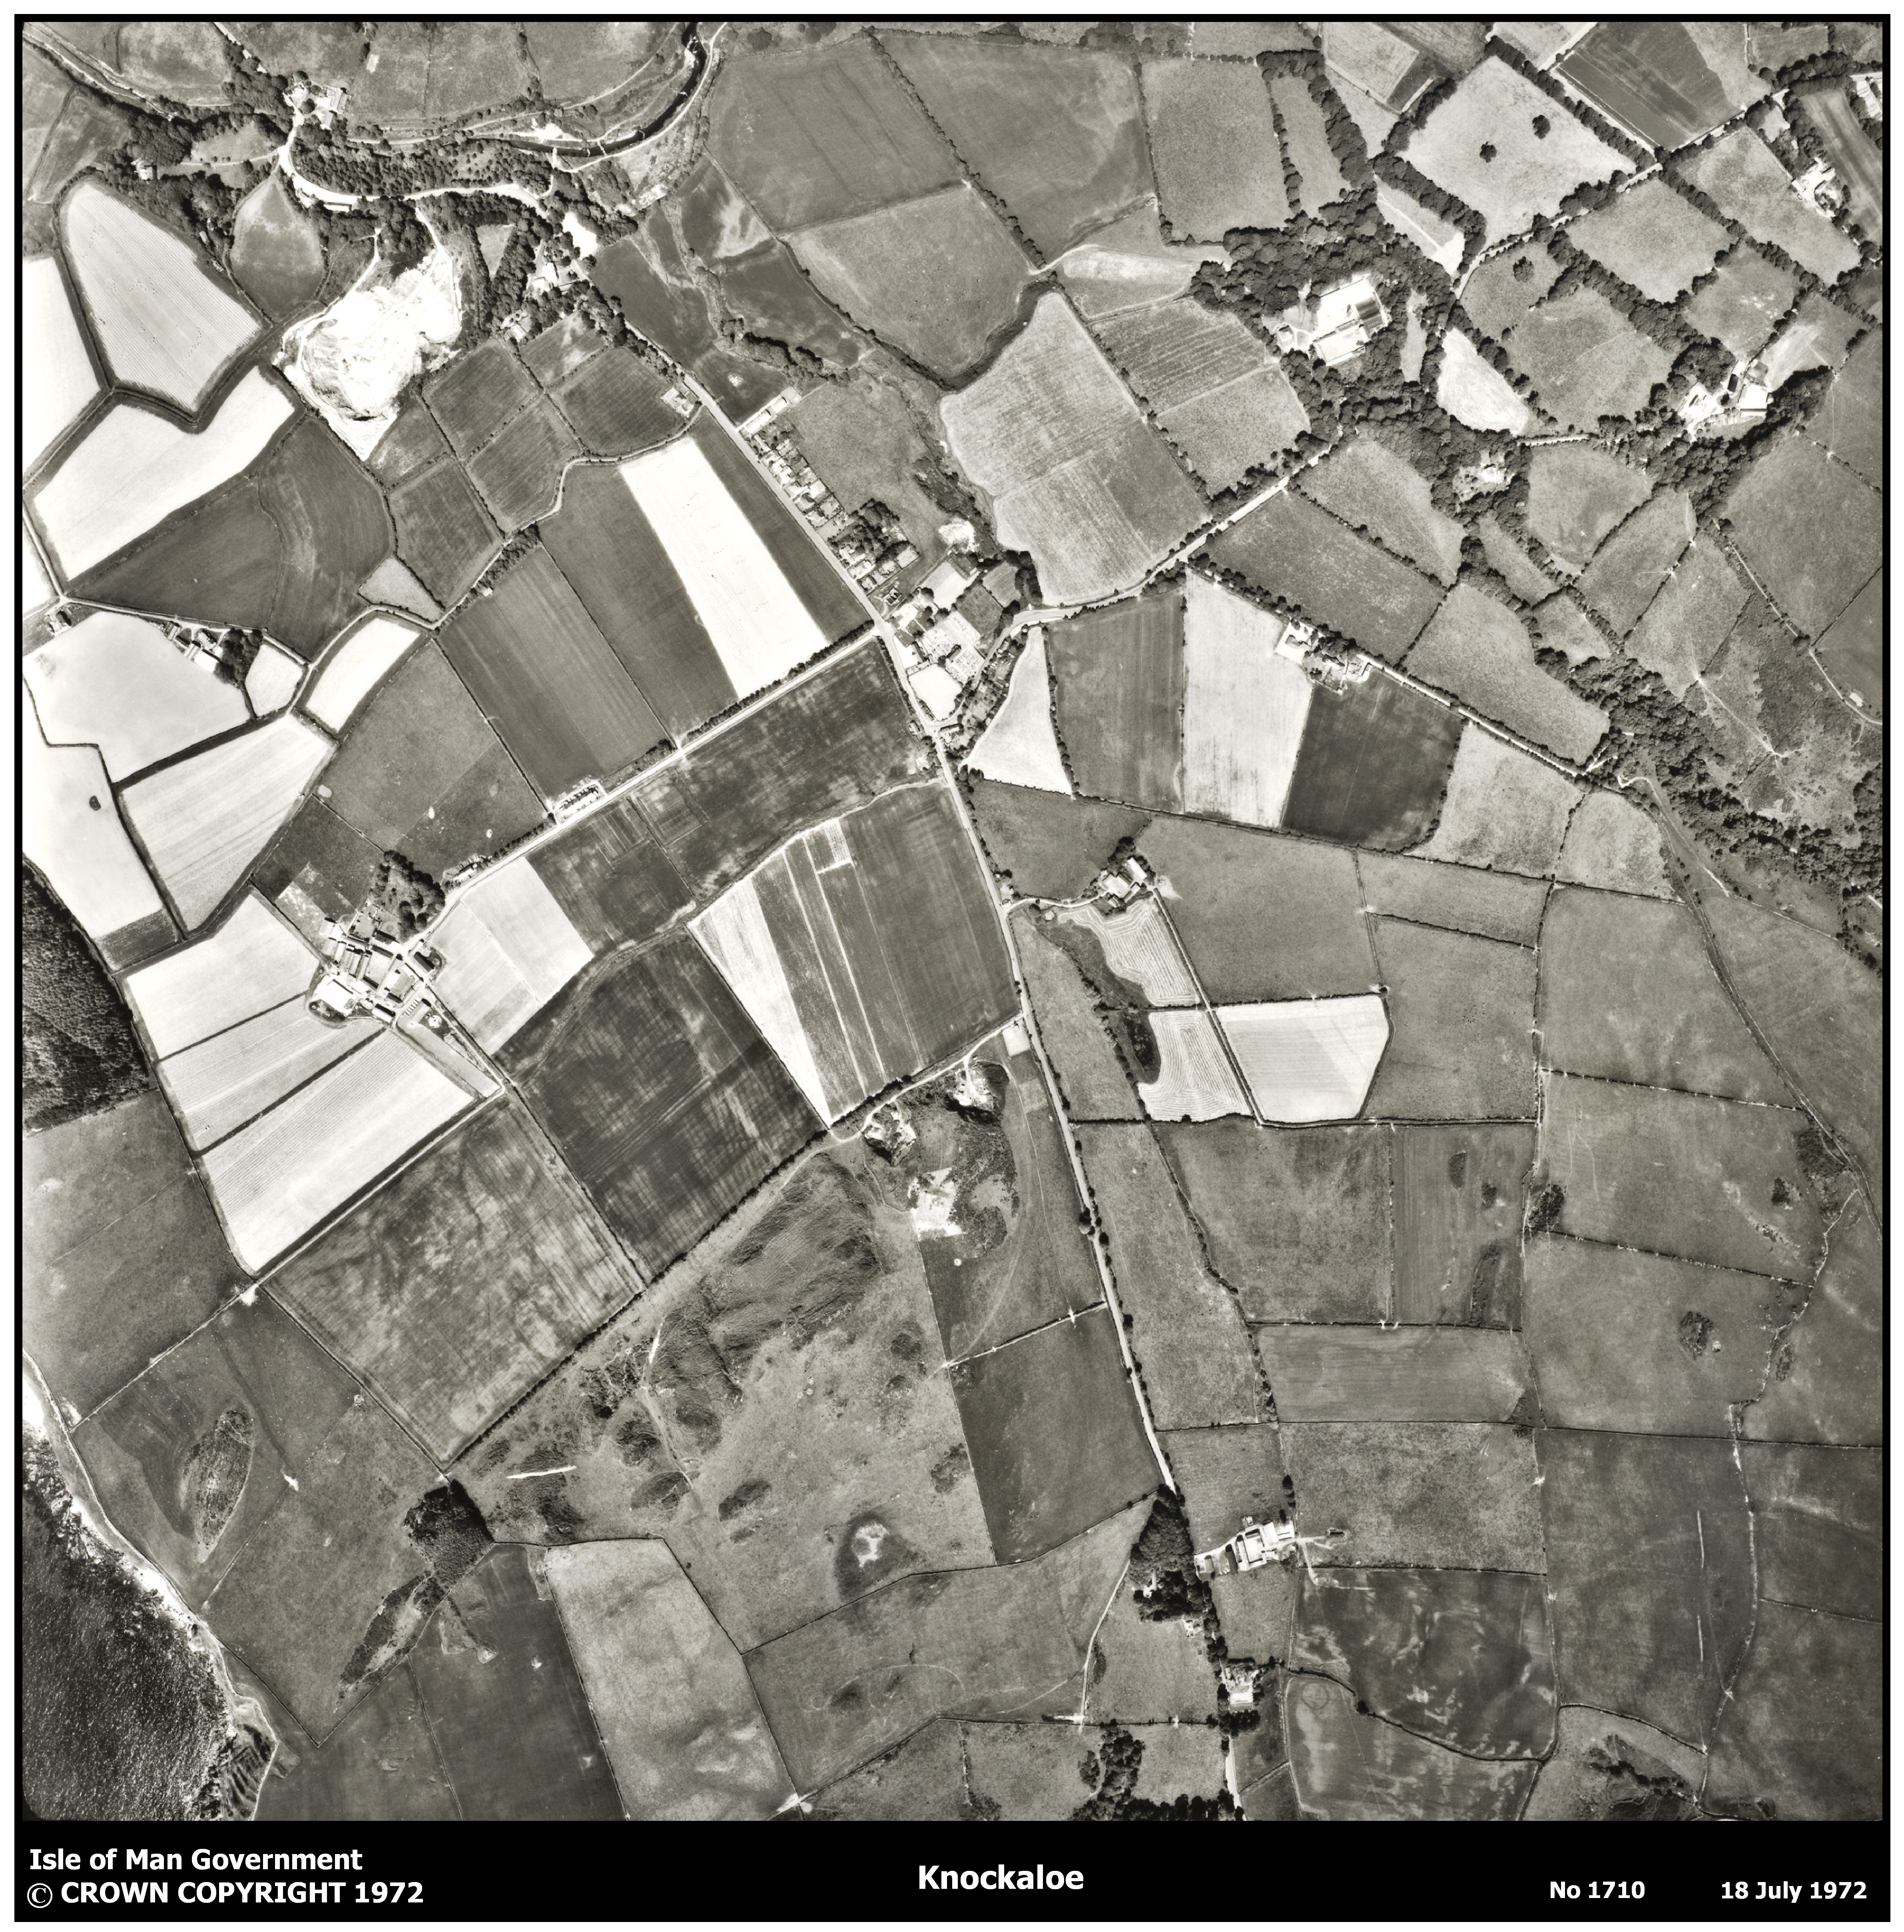 1972 Aerial Photograph ©Department of Infrastructure, Isle of Man Government